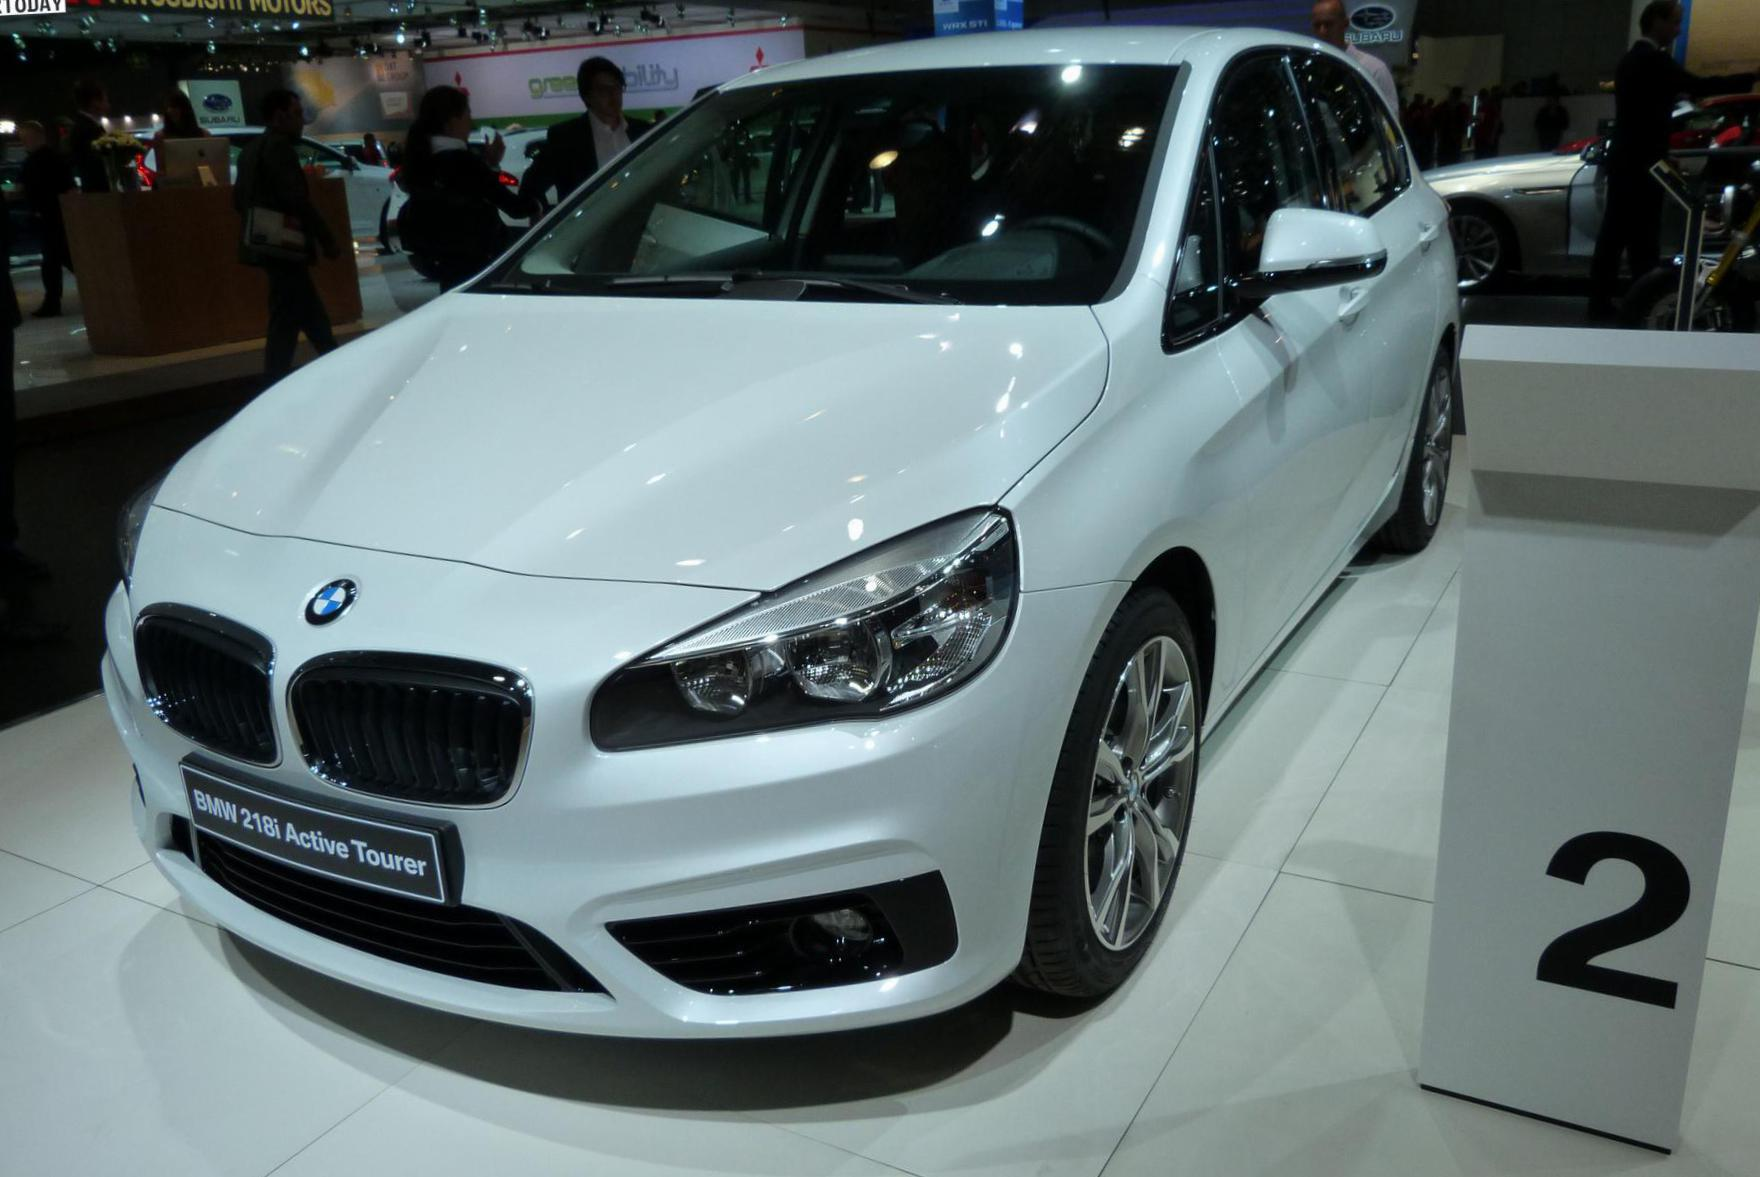 BMW 2 Series Active Tourer (F45) Specification minivan